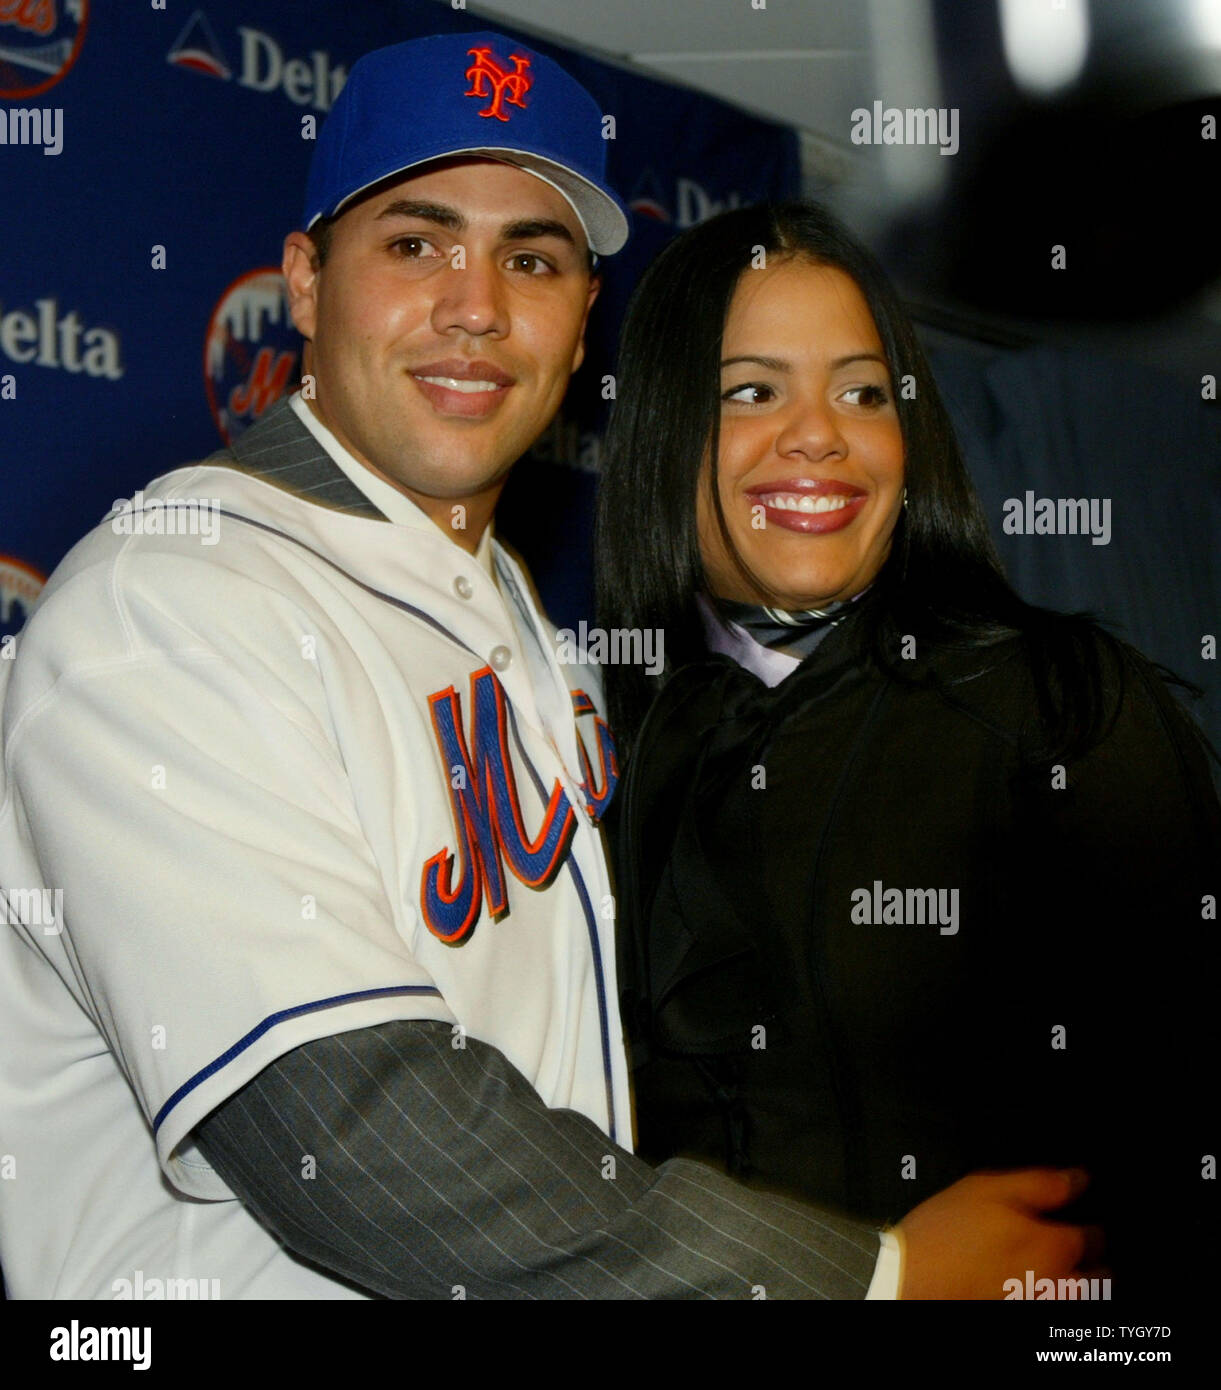 Carlos Beltran Is Joined By His Wife Jessica During A Press